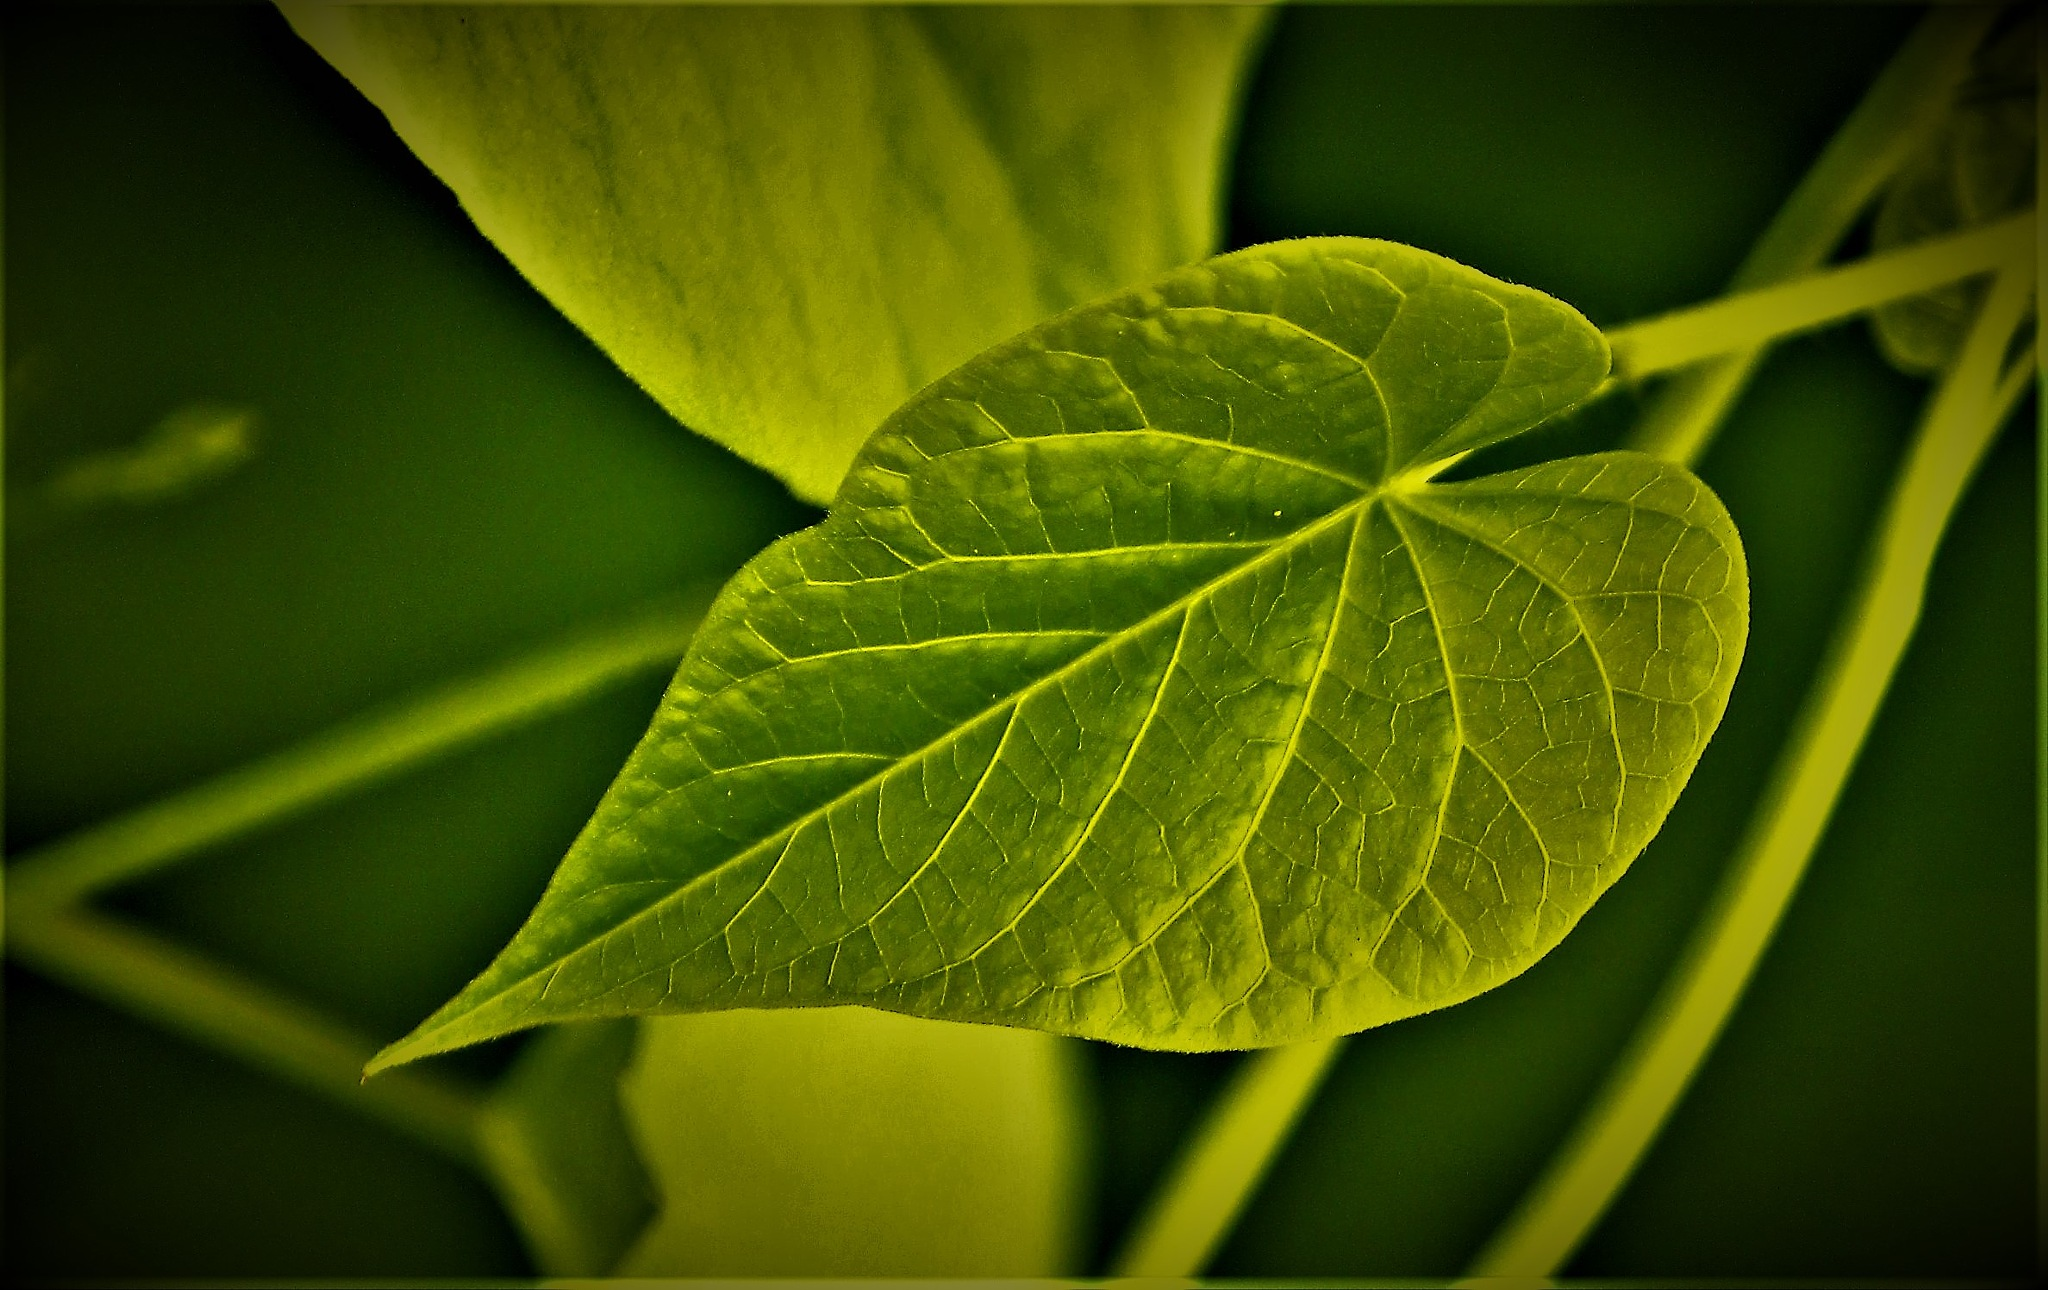 ~~~~~~Leafe of a Creaper from the Road-side,.........!!! by gajju.tyagi.1